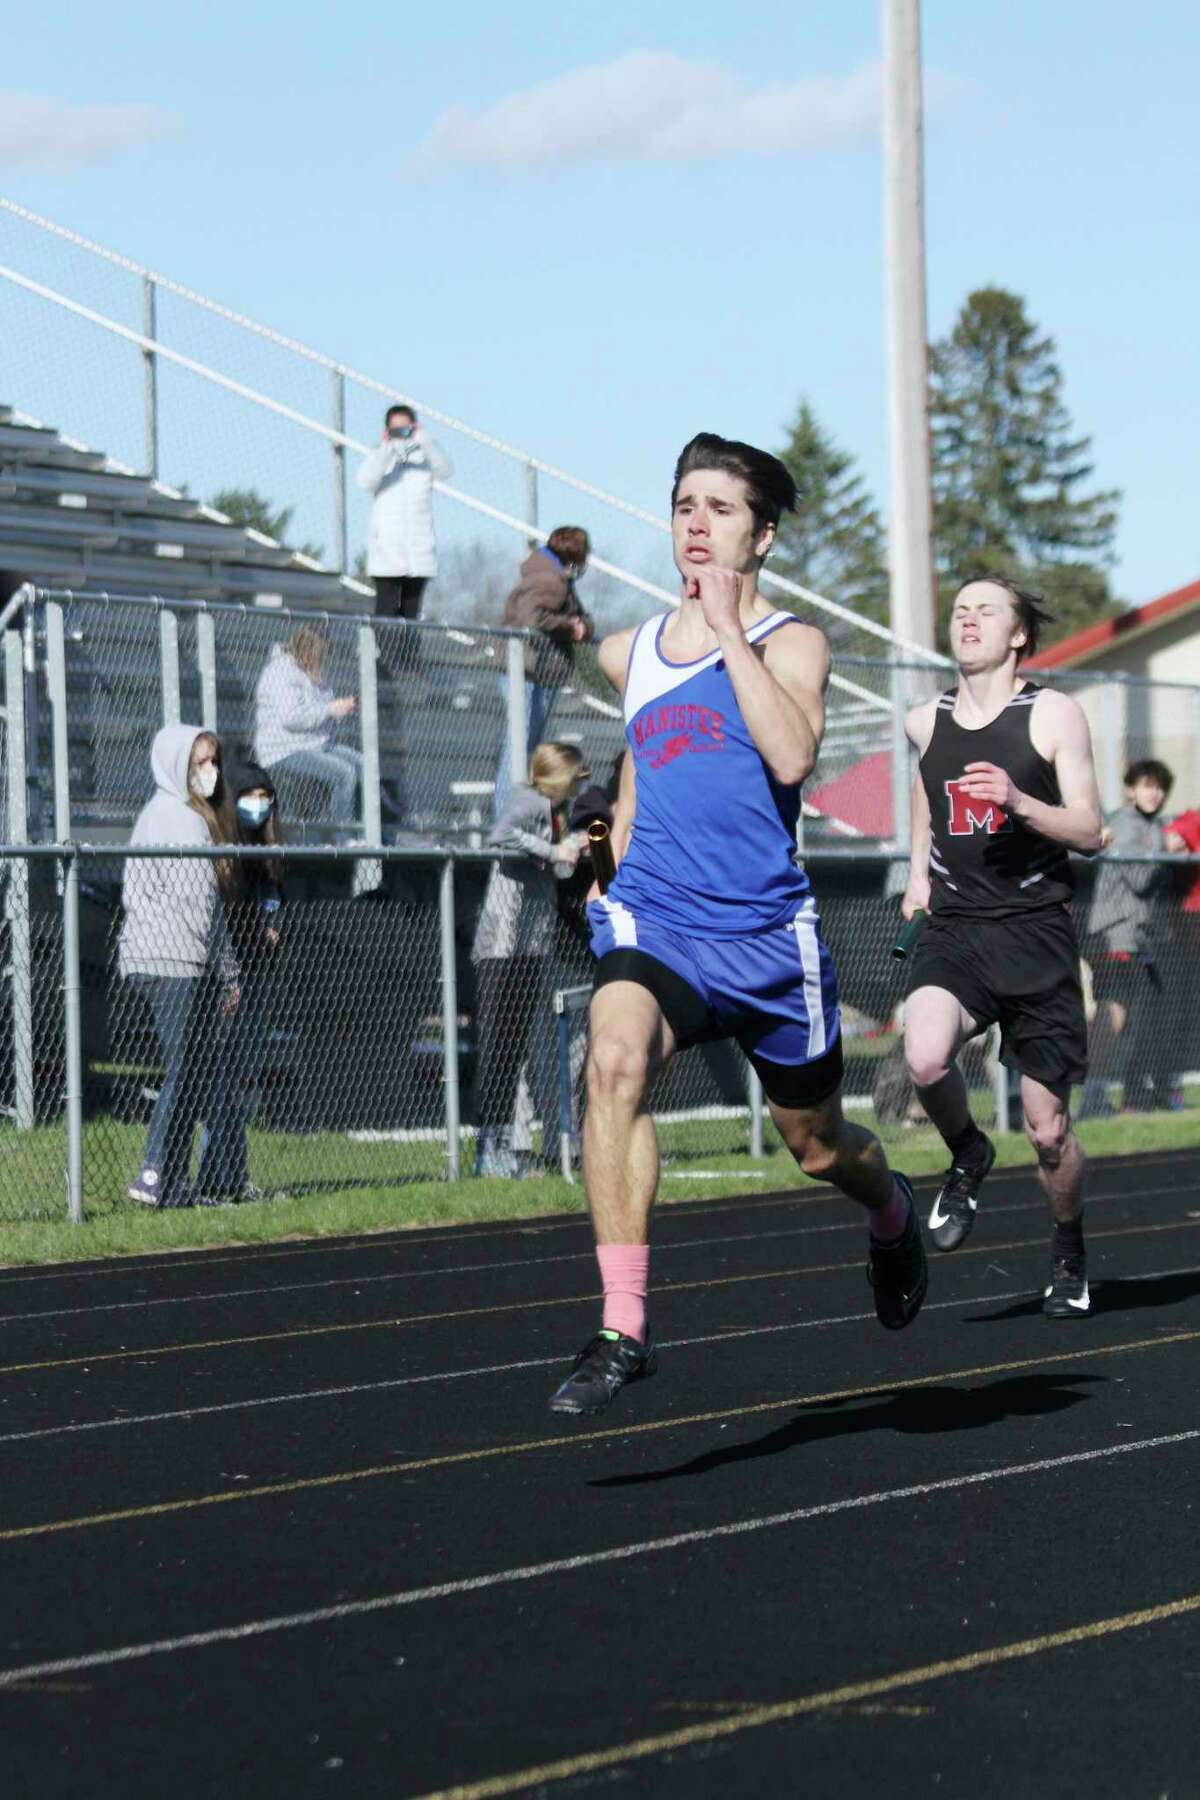 The Manistee Catholic Central boys track and field teamwas paced by their standout senior sprinter Mateo Barnett, who won the 400 meters in a personal record time of 50.92, during theMichigan Interscholastic Track Coaches Association (MITCA) team state meet in Mount Pleasant on Saturday. (News Advocate file photo)